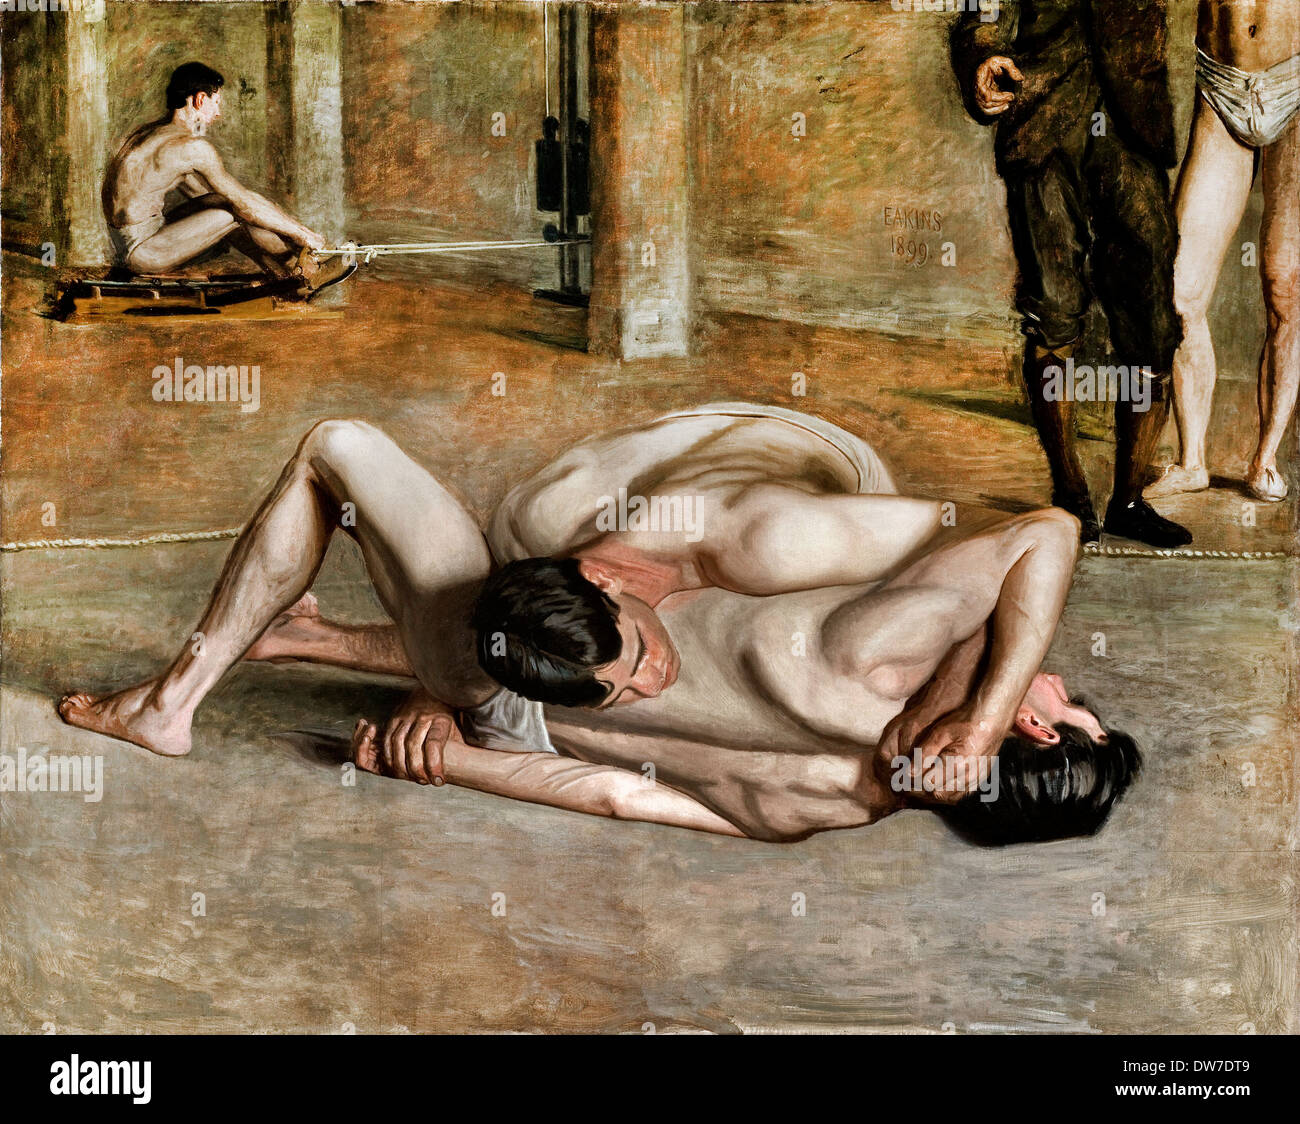 Thomas Eakins, Wrestlers 1899 Oil on canvas. Los Angeles County Museum of Art, Los Angeles, USA. - Stock Image